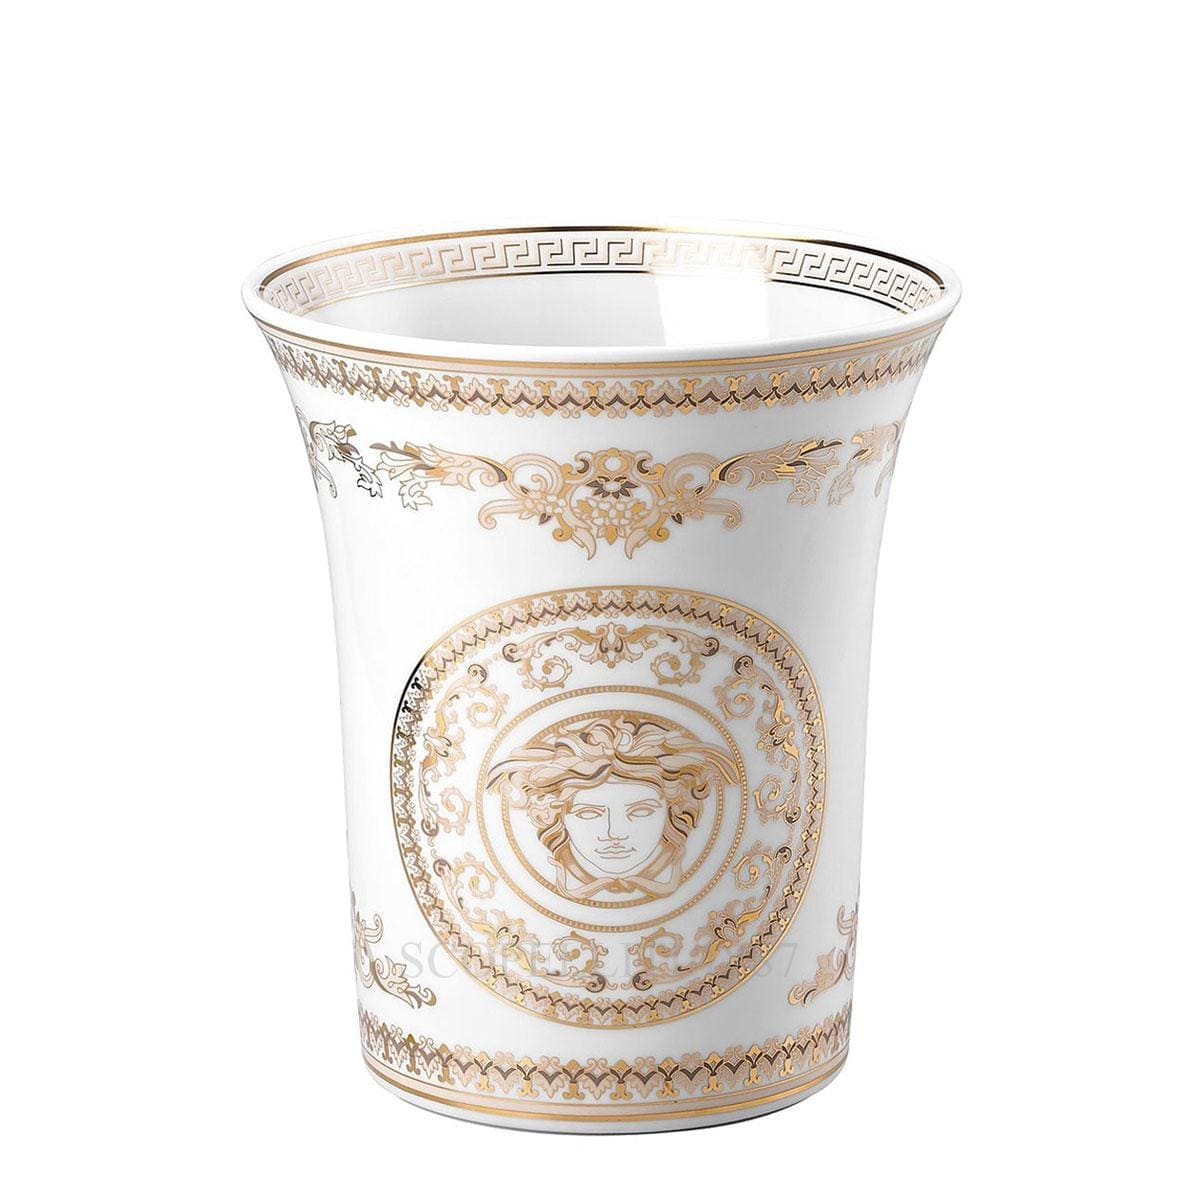 versace italian design medusa gala vase white and golden small